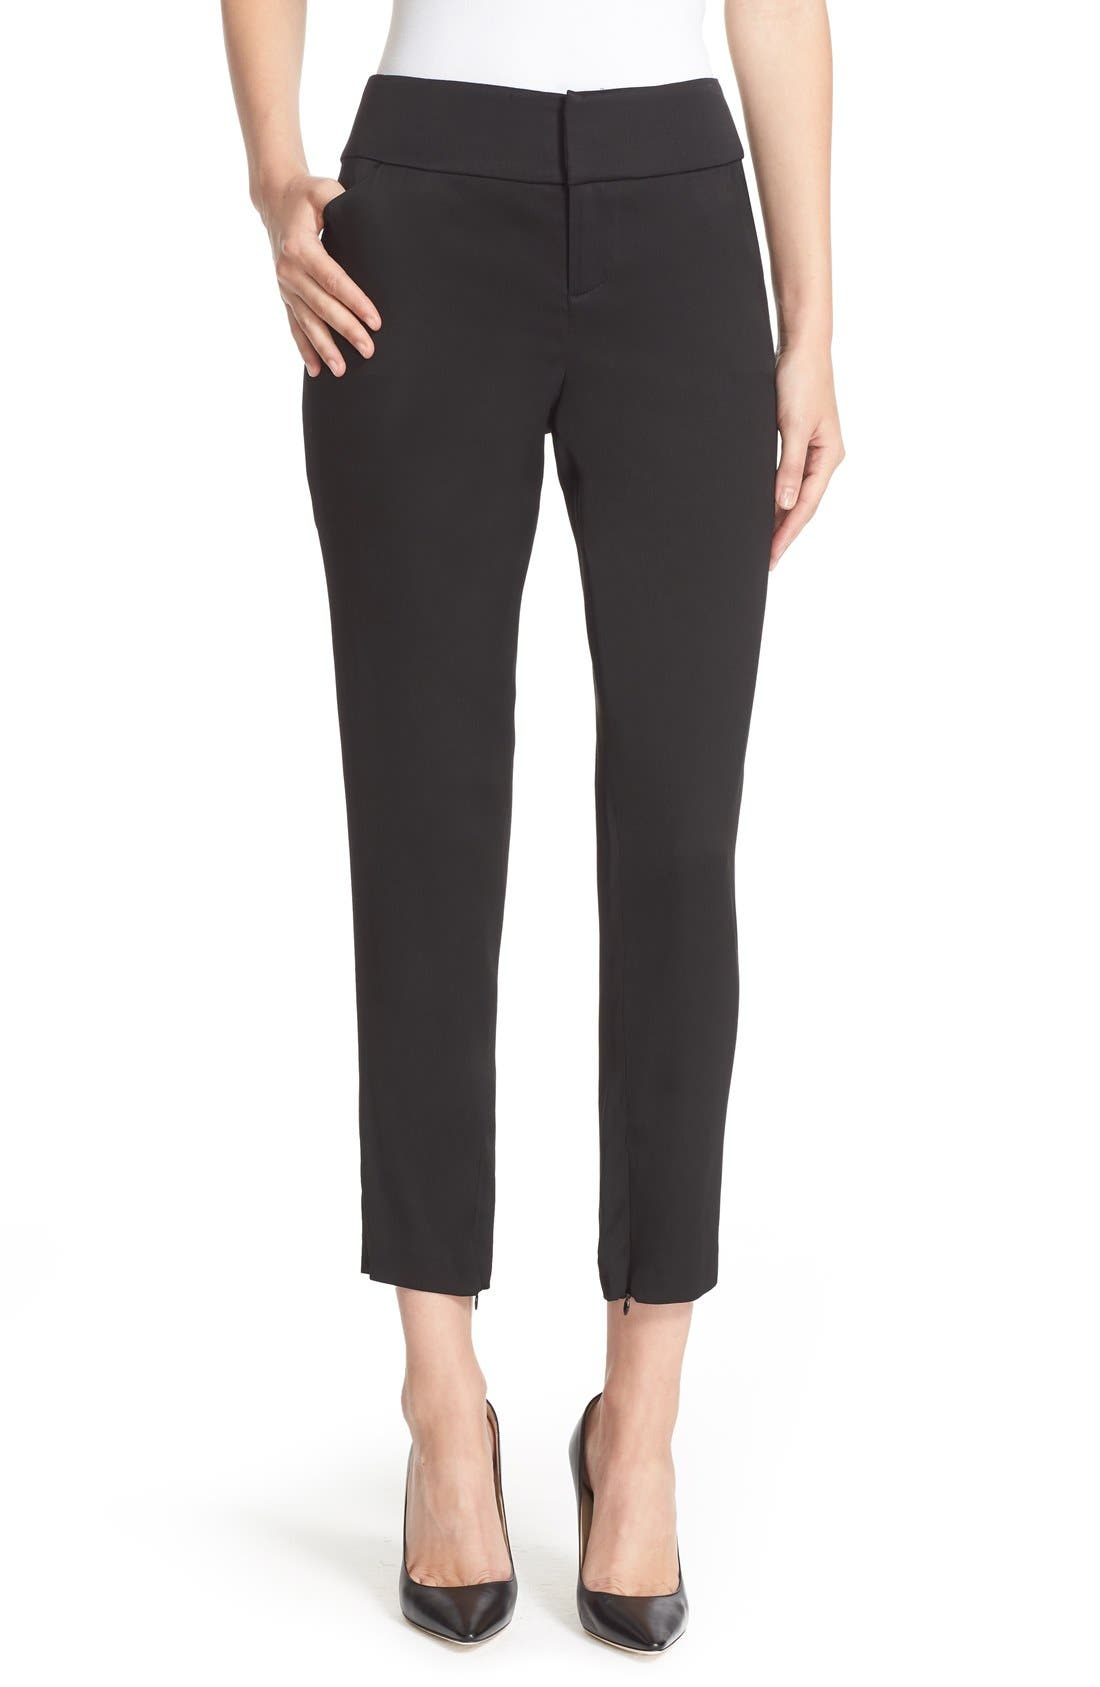 ALICE + OLIVIA Stacey Wide Waist Fitted Ankle Trousers, Main, color, 001